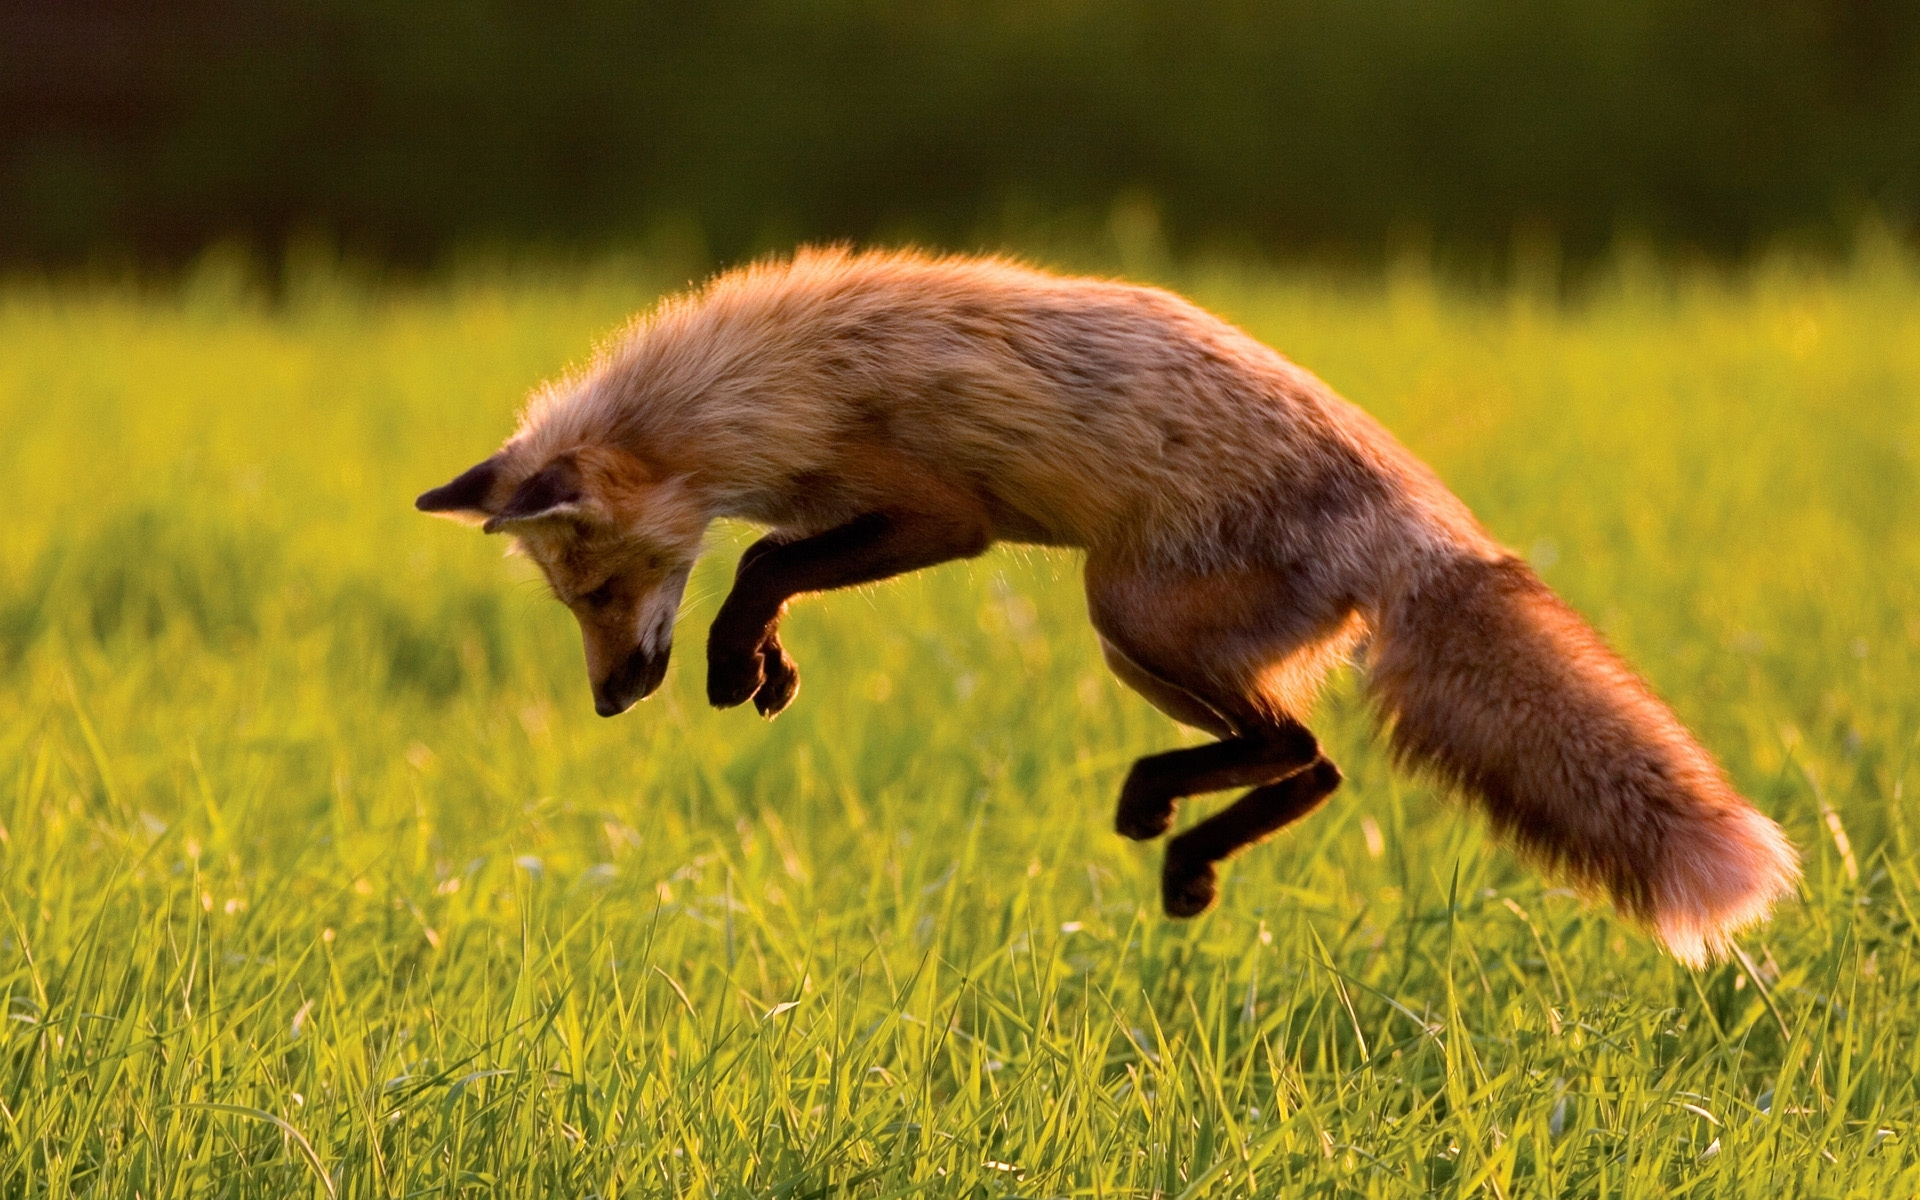 37025 download wallpaper Animals, Fox screensavers and pictures for free